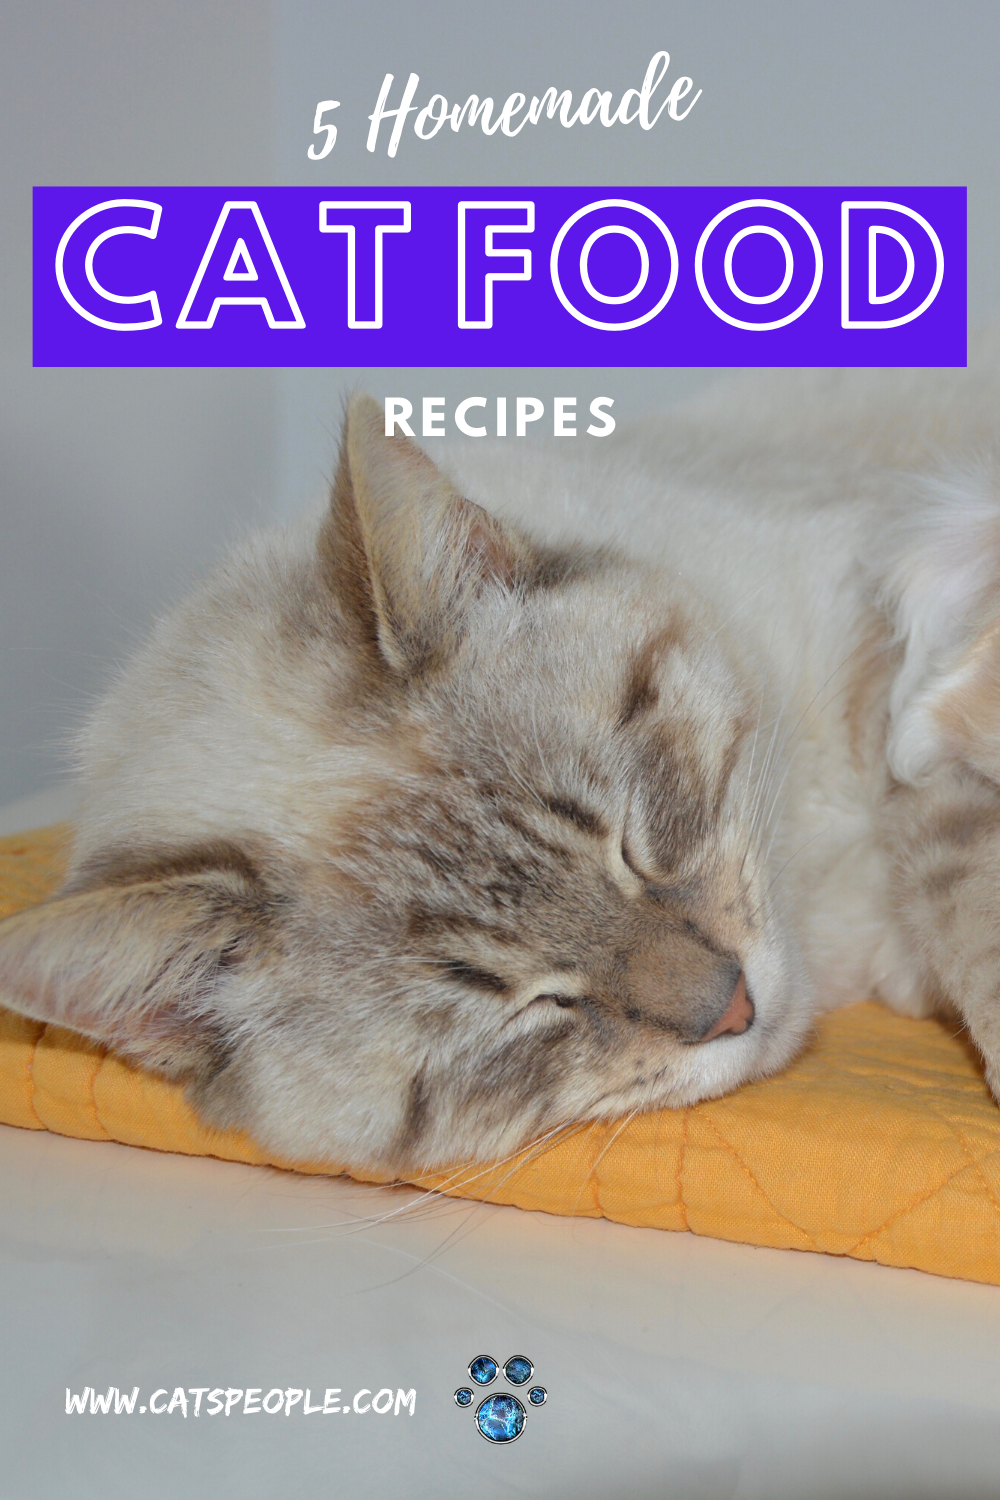 5 Homemade Cat Food Recipes Easy Cheap And Fun To Make In 2020 Homemade Cat Food Healthy Cat Food Cat Parenting